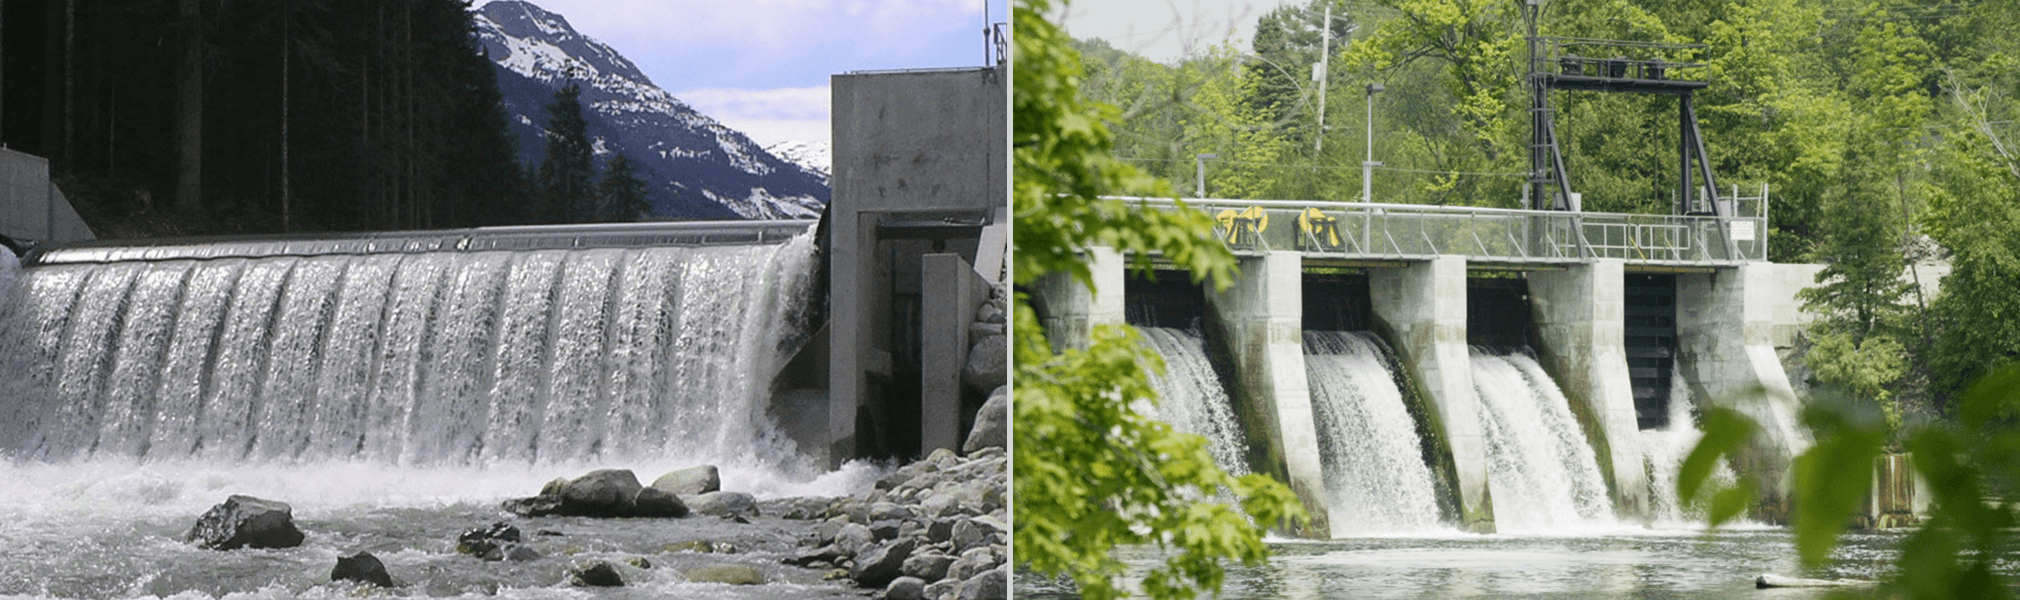 Rutherford Creek hydroelectric facility - Glen Miller hydroelectric facility